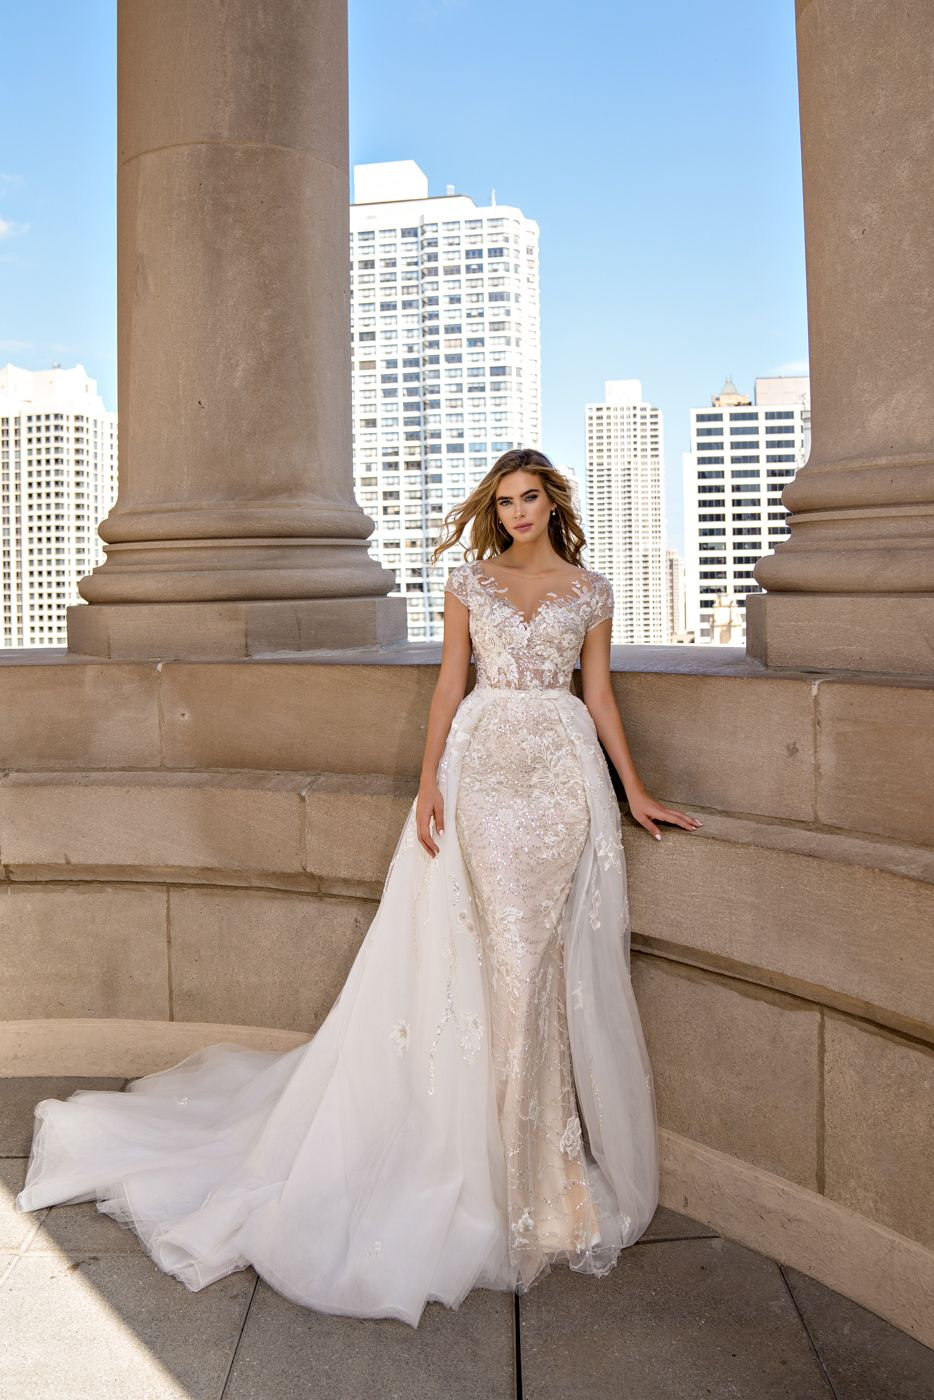 Wedding Dress Piter Martines P M 026 For Sale At Ny City Bride Wedding Dresses Wedding Dress Store Wedding Gowns Mermaid [ 1400 x 934 Pixel ]